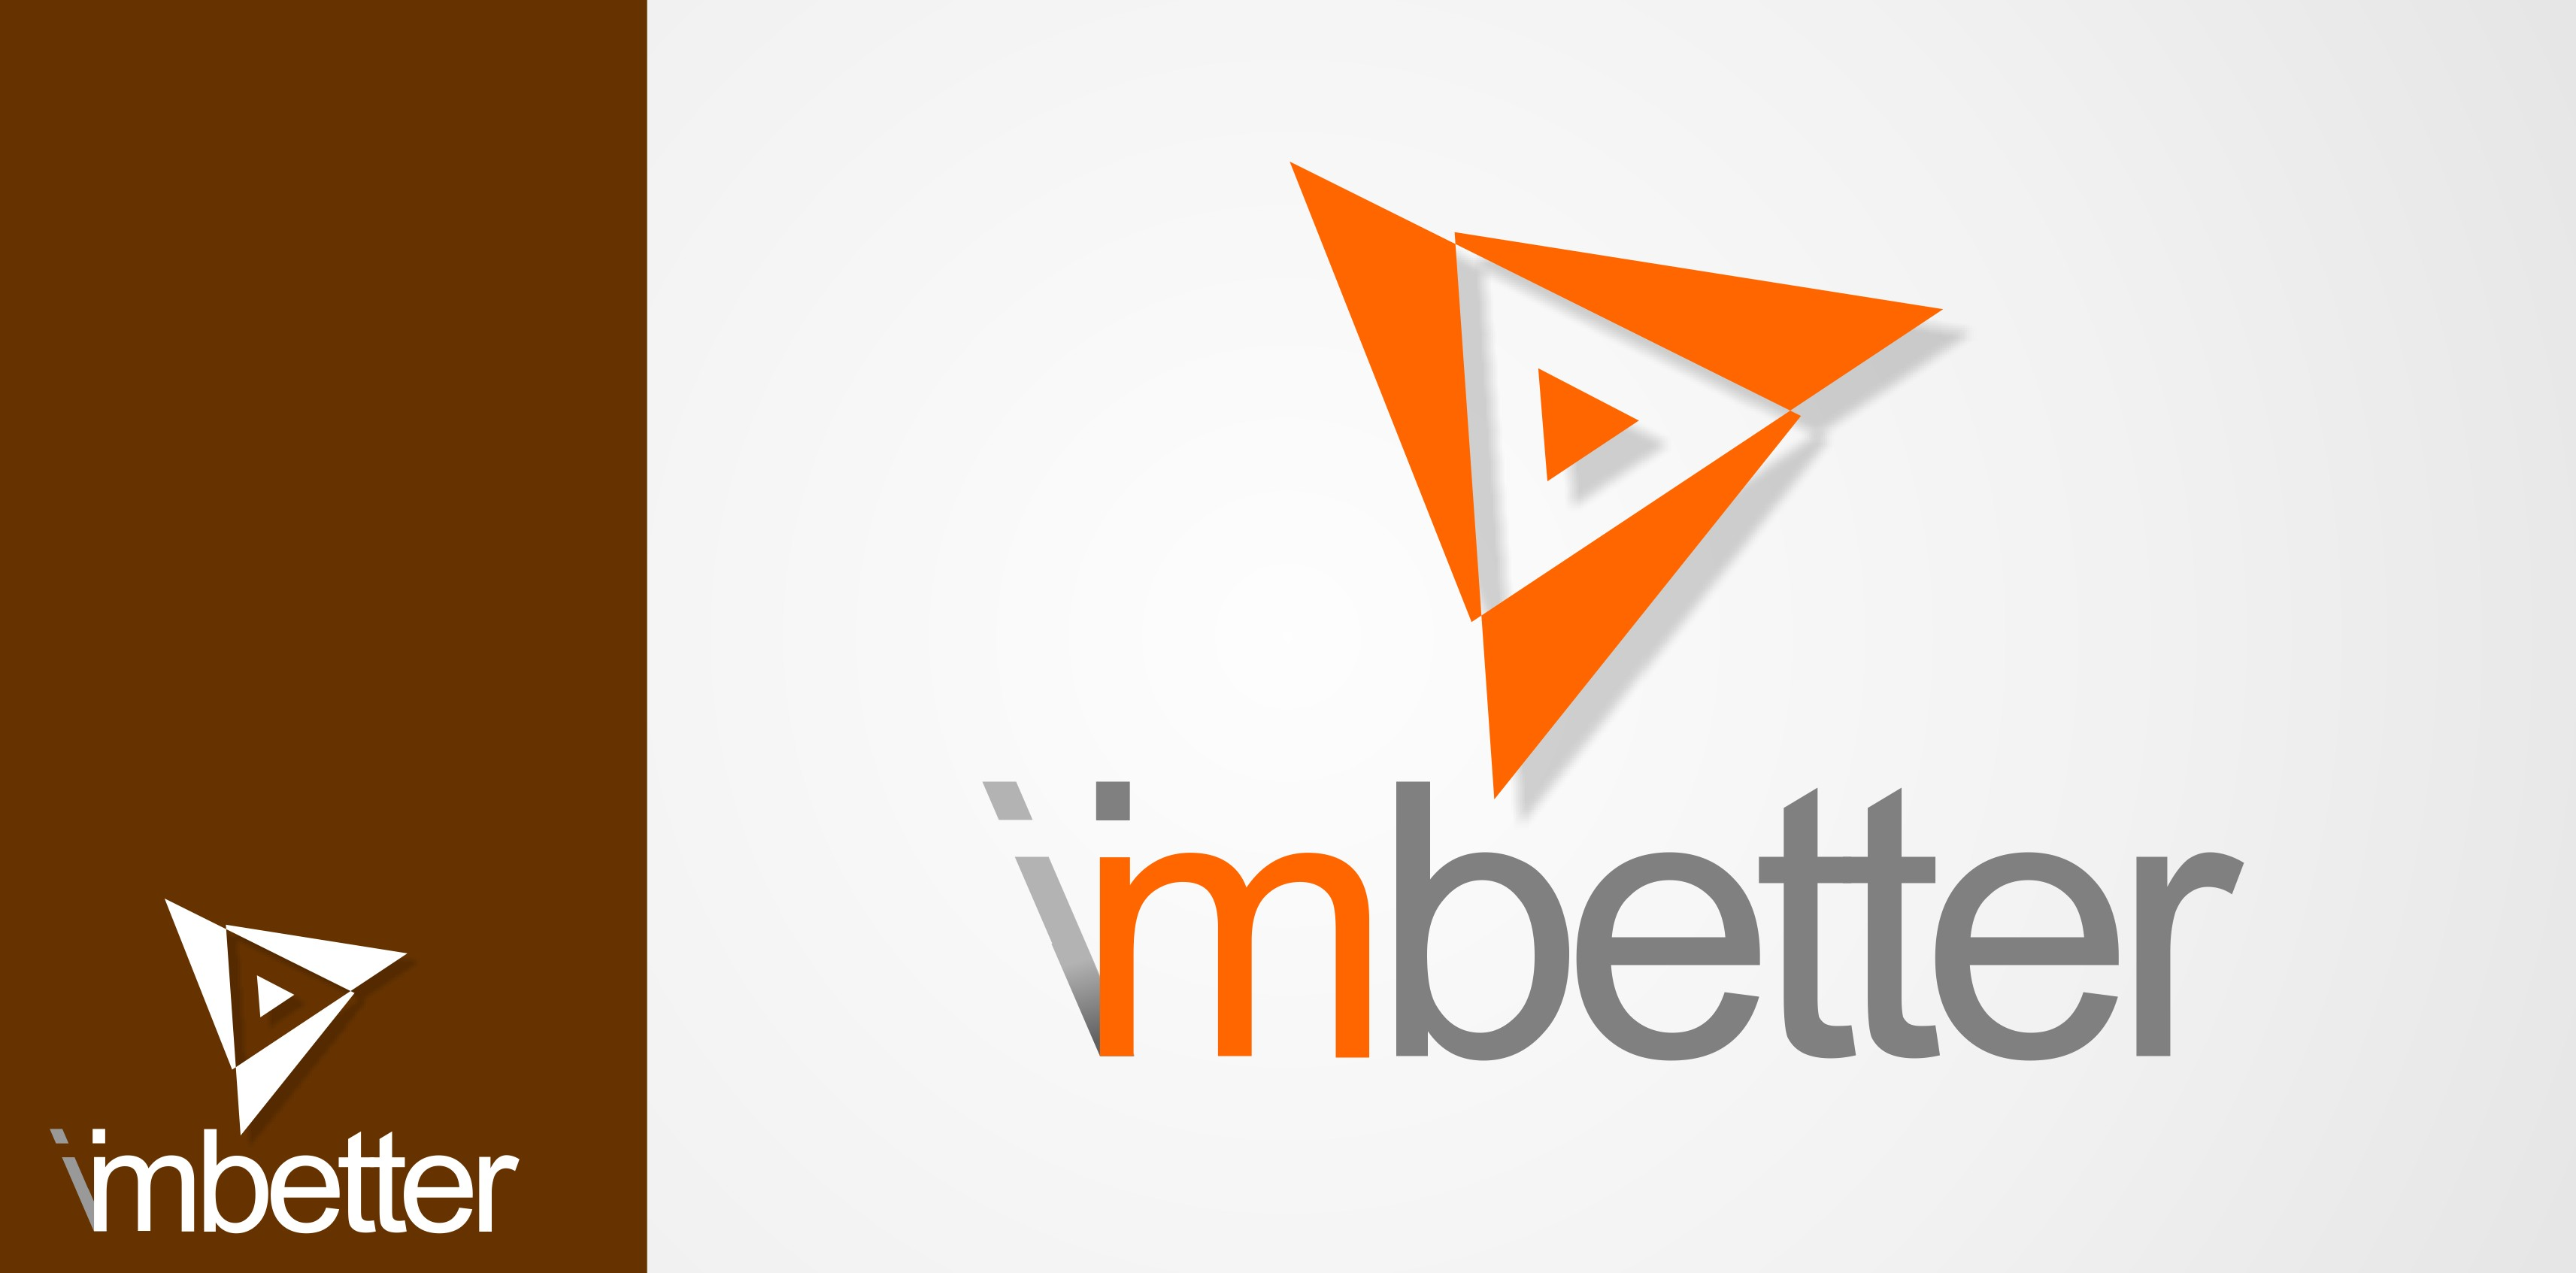 Logo Design by Crispin Jr Vasquez - Entry No. 6 in the Logo Design Contest Imaginative Logo Design for imbetter.